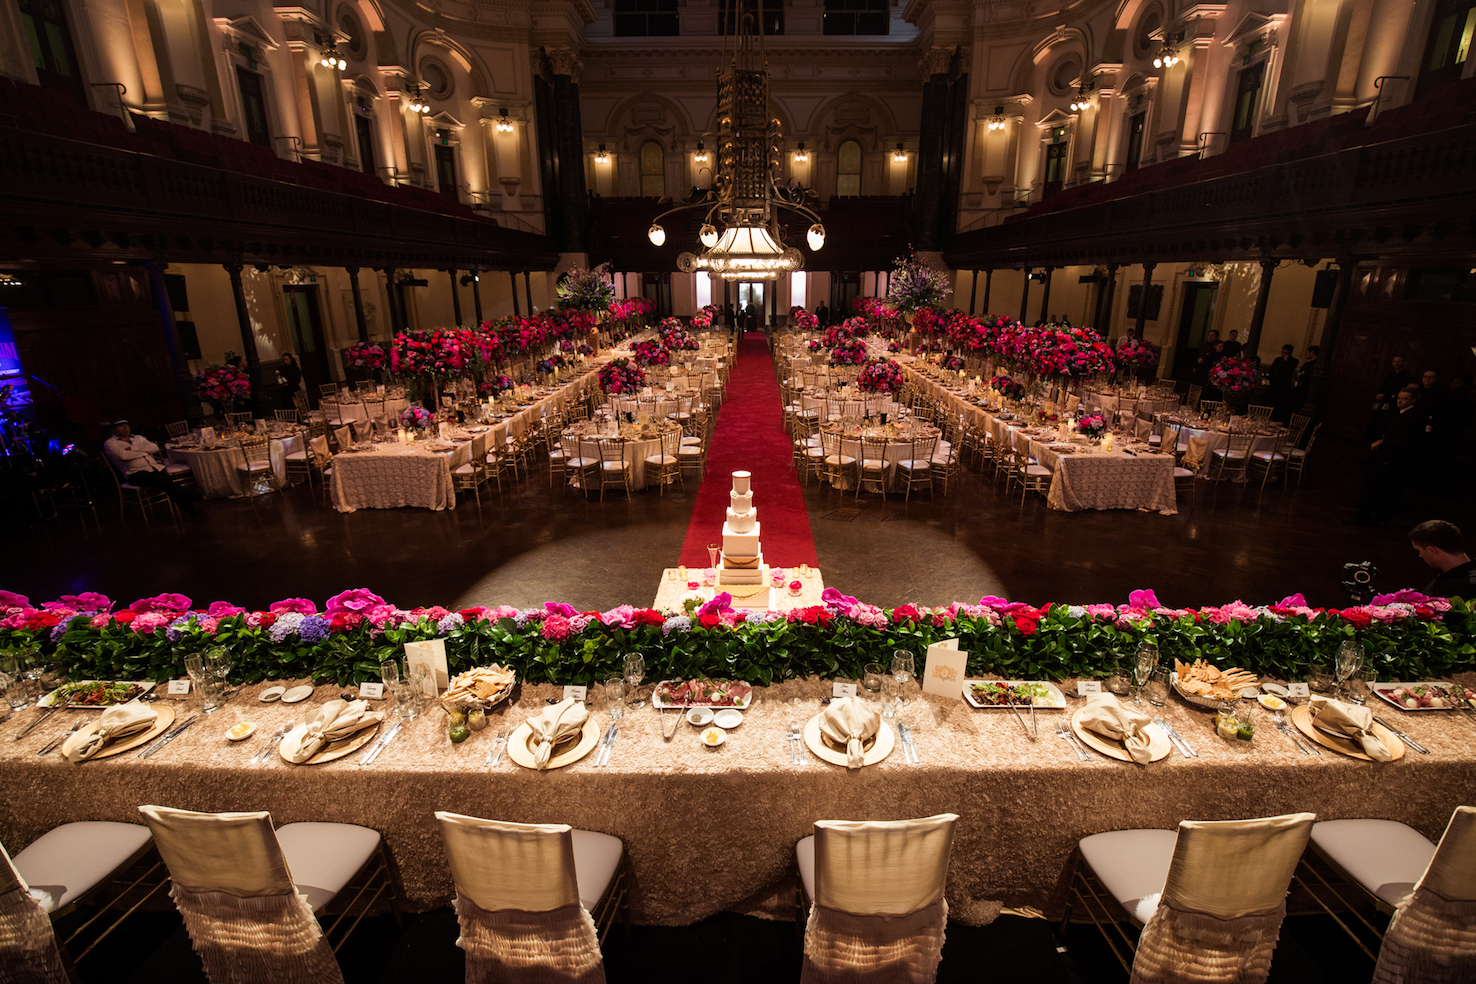 sydney_town_hall_luxury_wedding_bridal_table_centrepieces.jpg